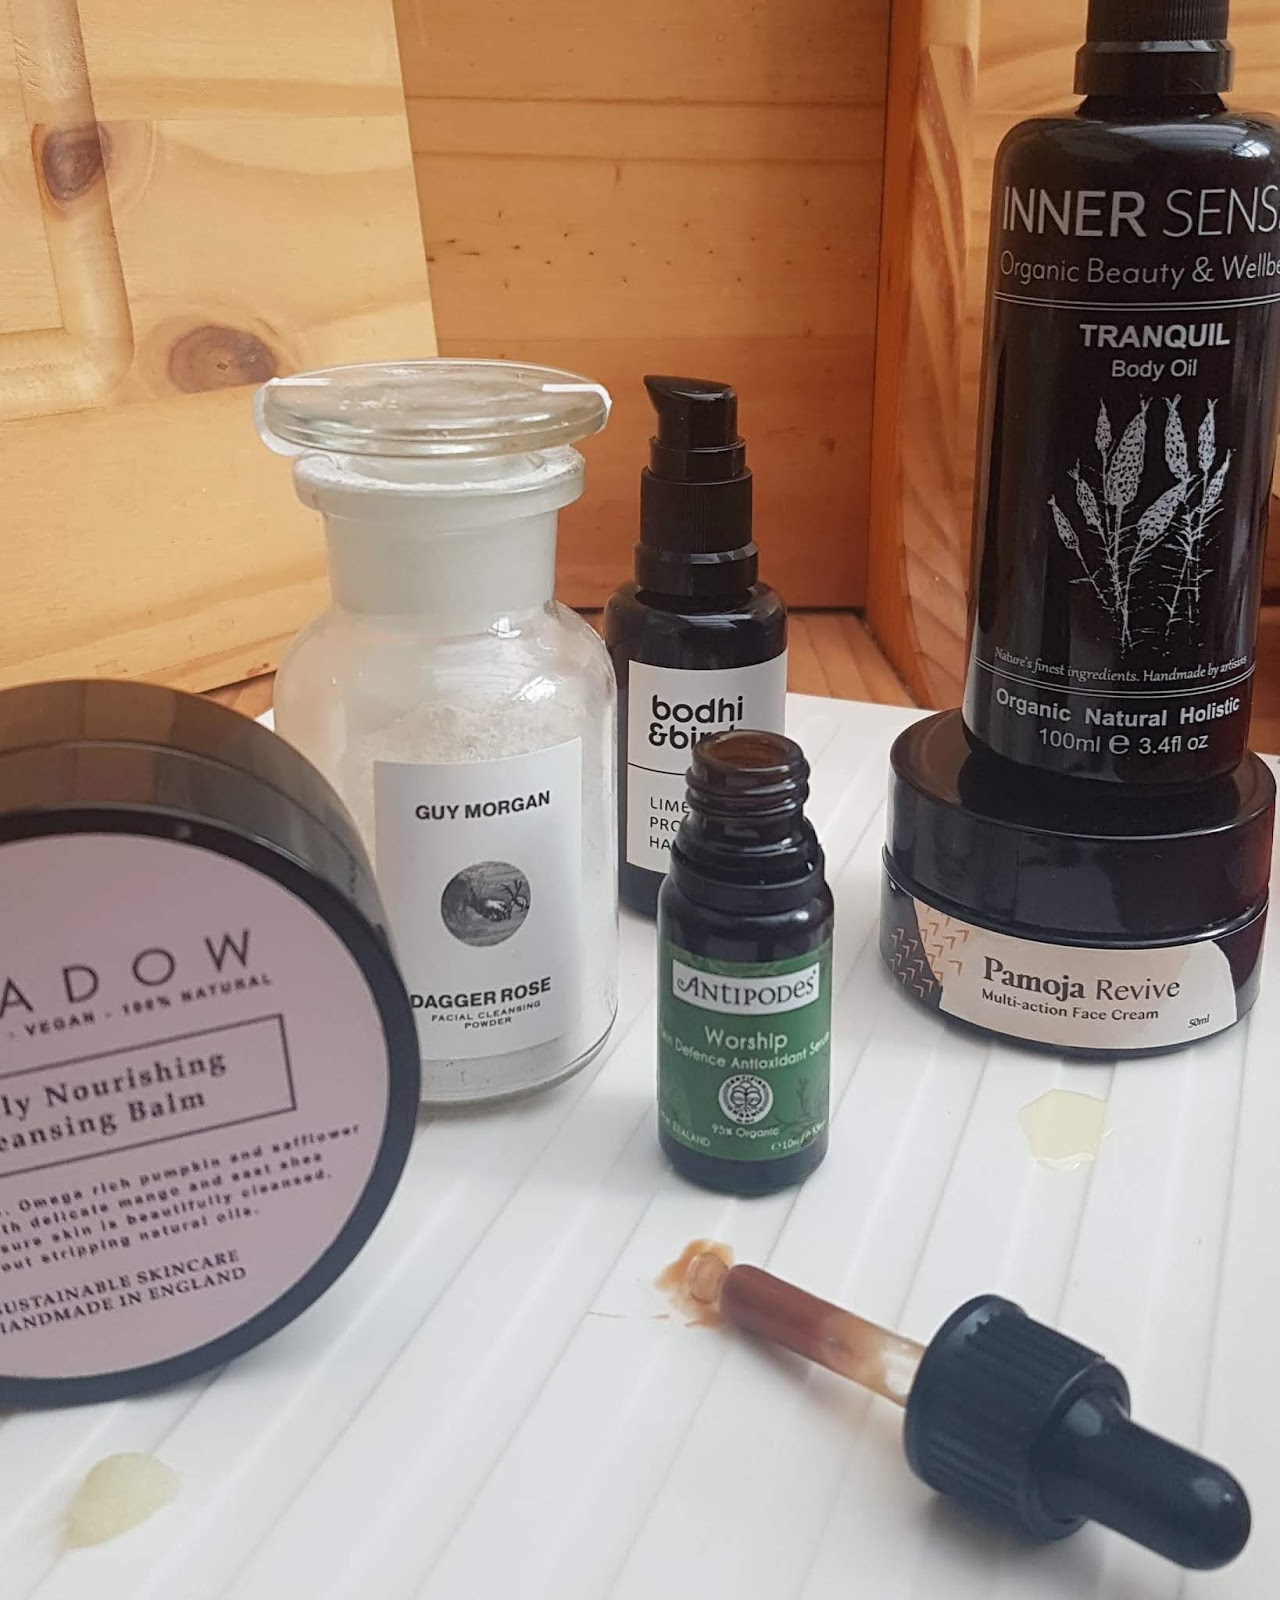 Green Beauty Favourites - Top Picks Spring 2020, Inner Senses Tranquil Body Oil, Bodhi & Birch Lime Blossom Hand Serum, Guy Morgan Dagger Rose Cleanser, Antipodes Worship Serum, Meadow Instant Hydration Body Balm